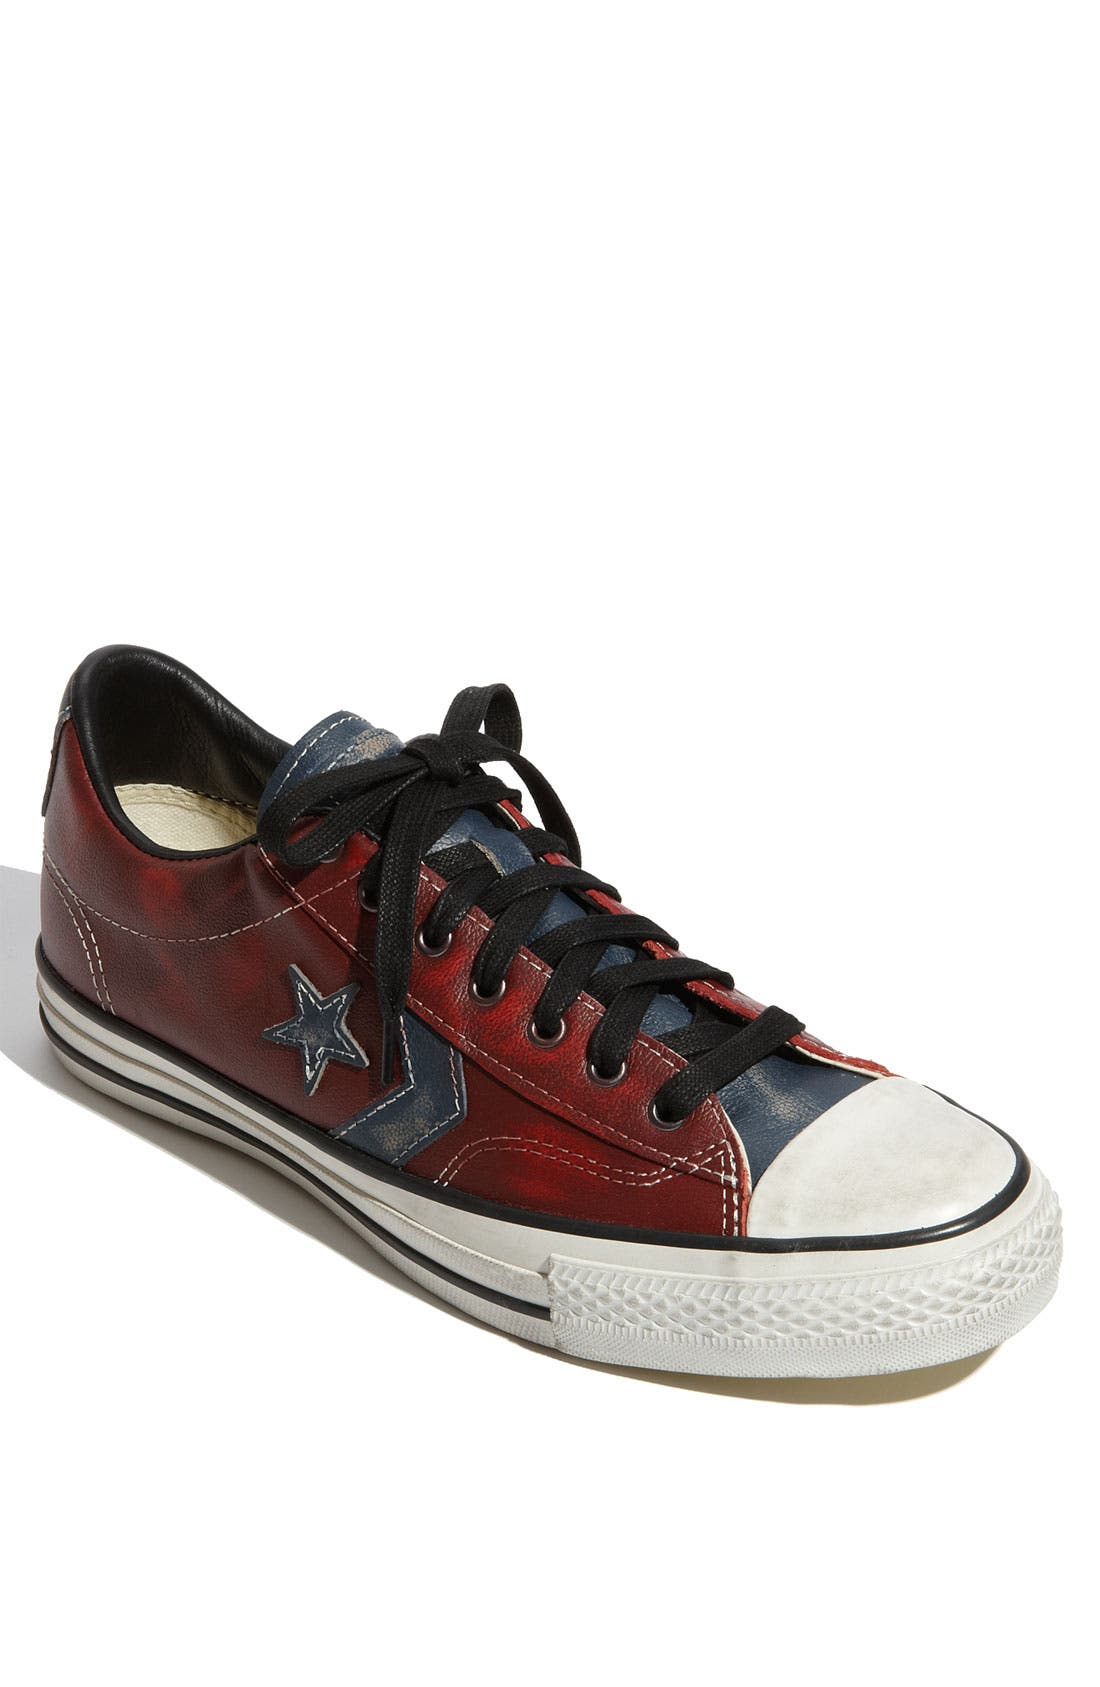 'Star Player' Leather Sneaker,                         Main,                         color, Red / Blue